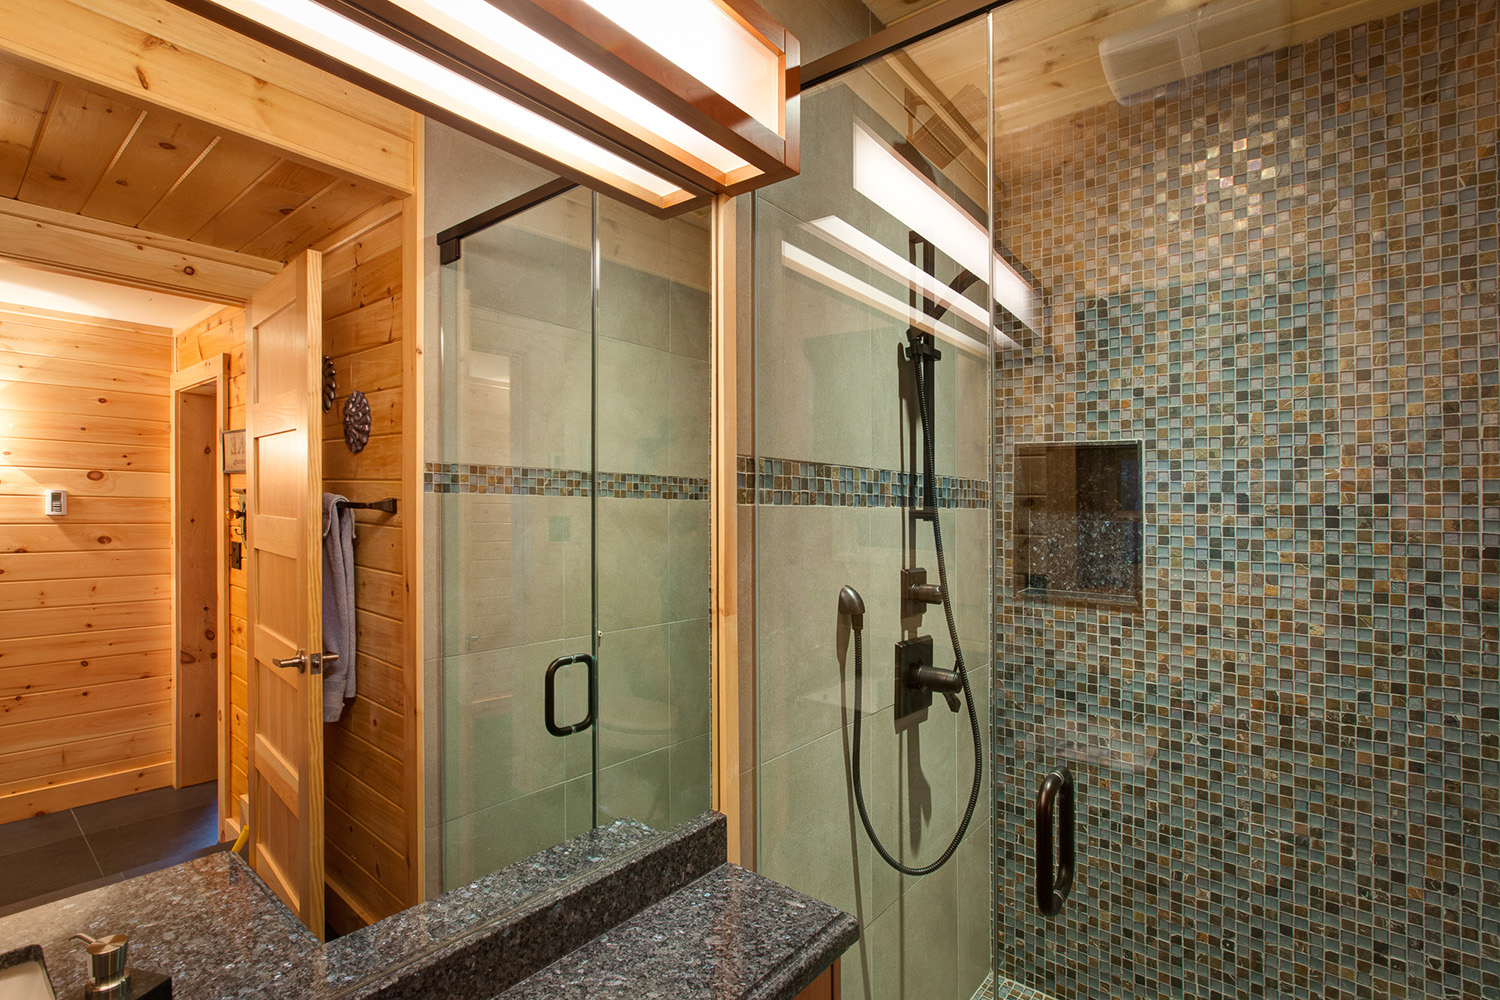 Bathroom with accent collage tiles, and integral shelf. Glass shower enclosure with anodized black fixtures